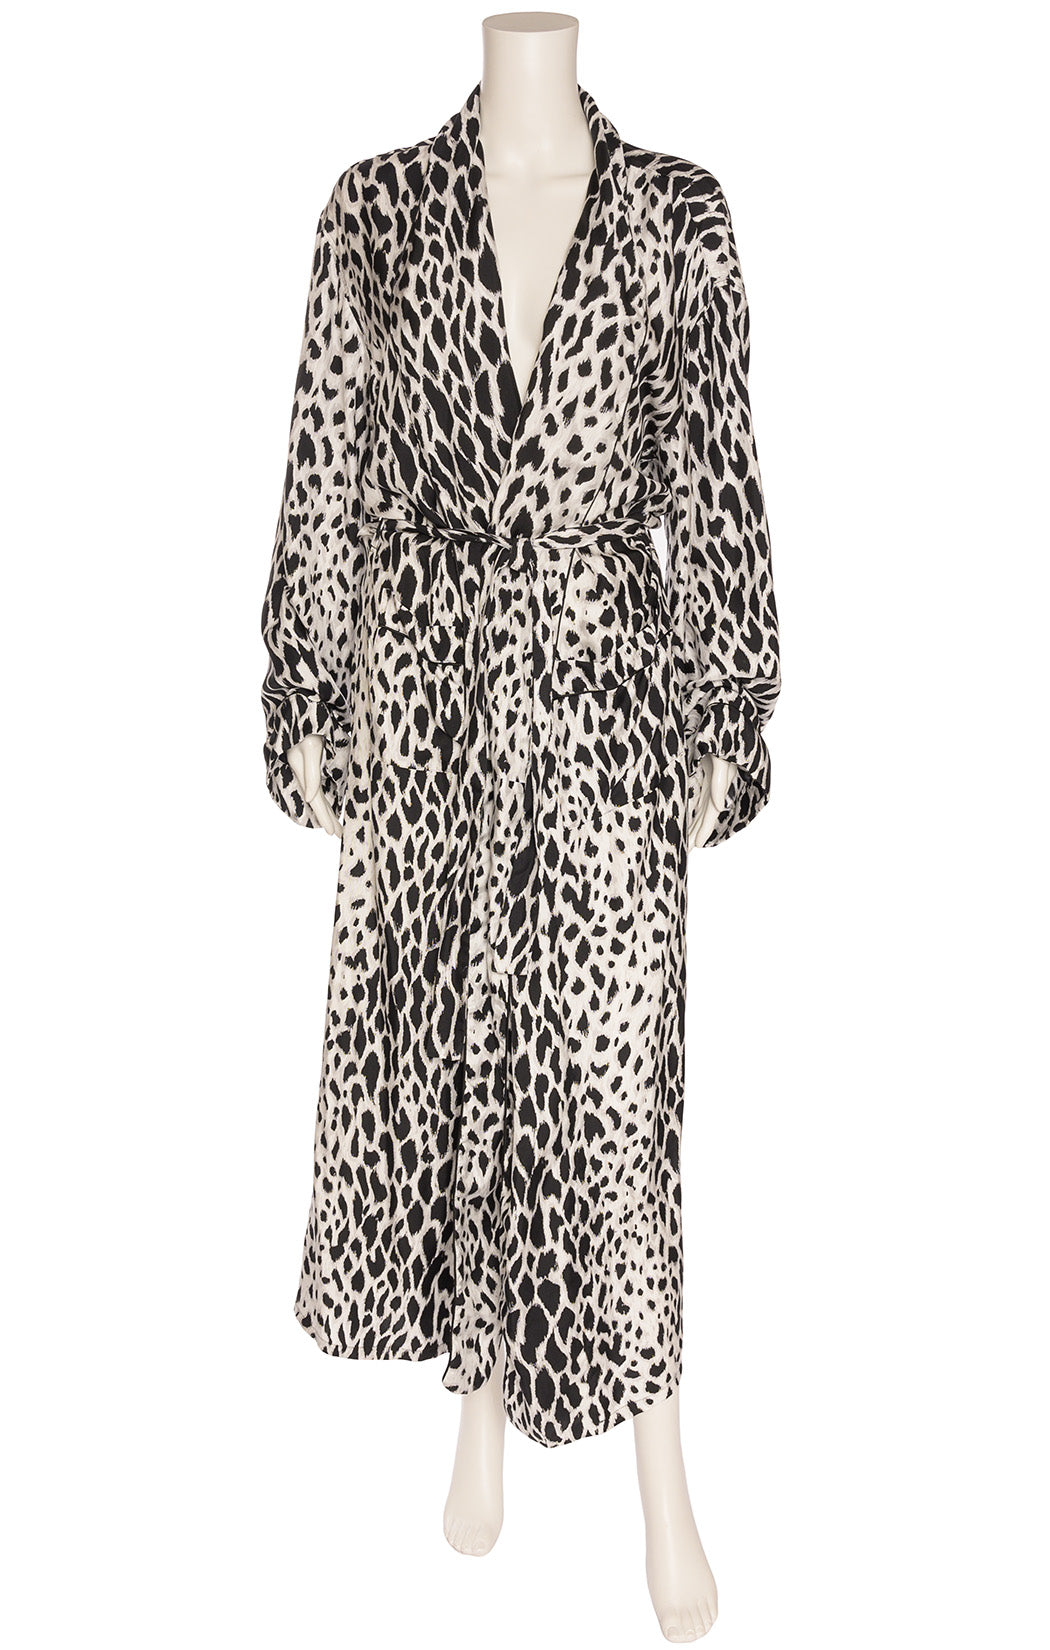 Black gray and white animal print wrap robe with front pockets and matching belt